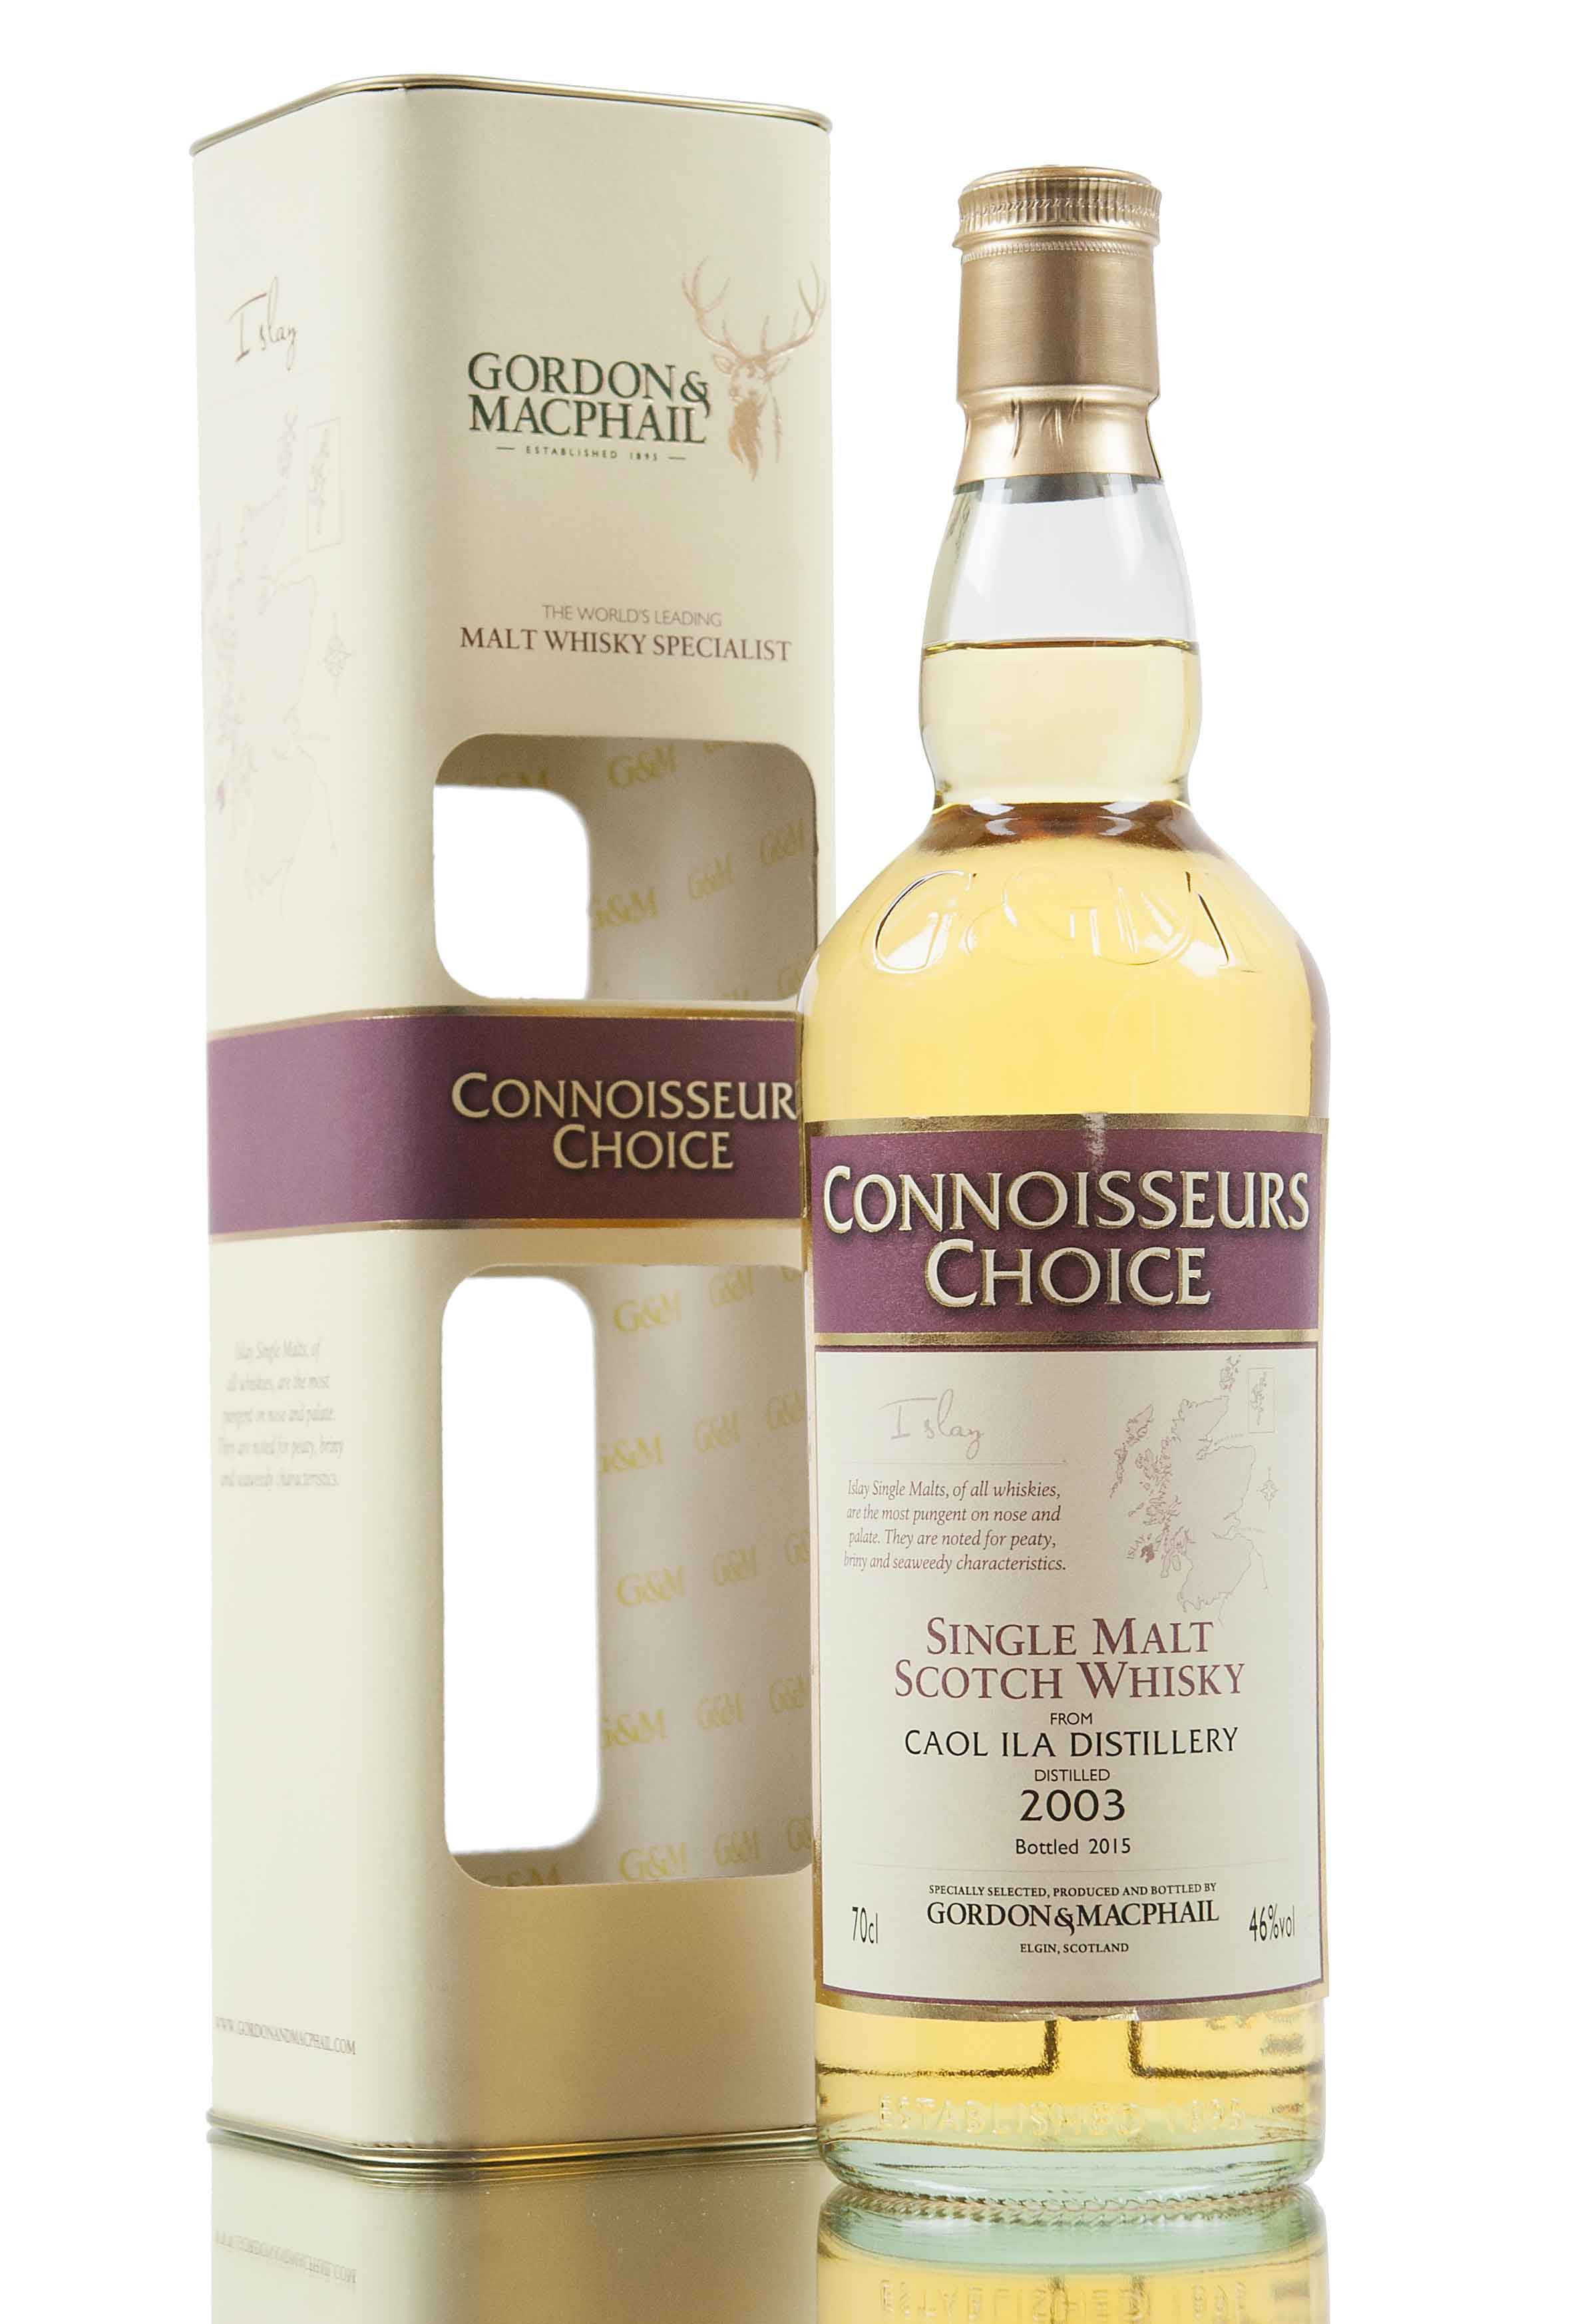 Caol Ila 2003 / Connoisseurs Choice / Bottled 2015